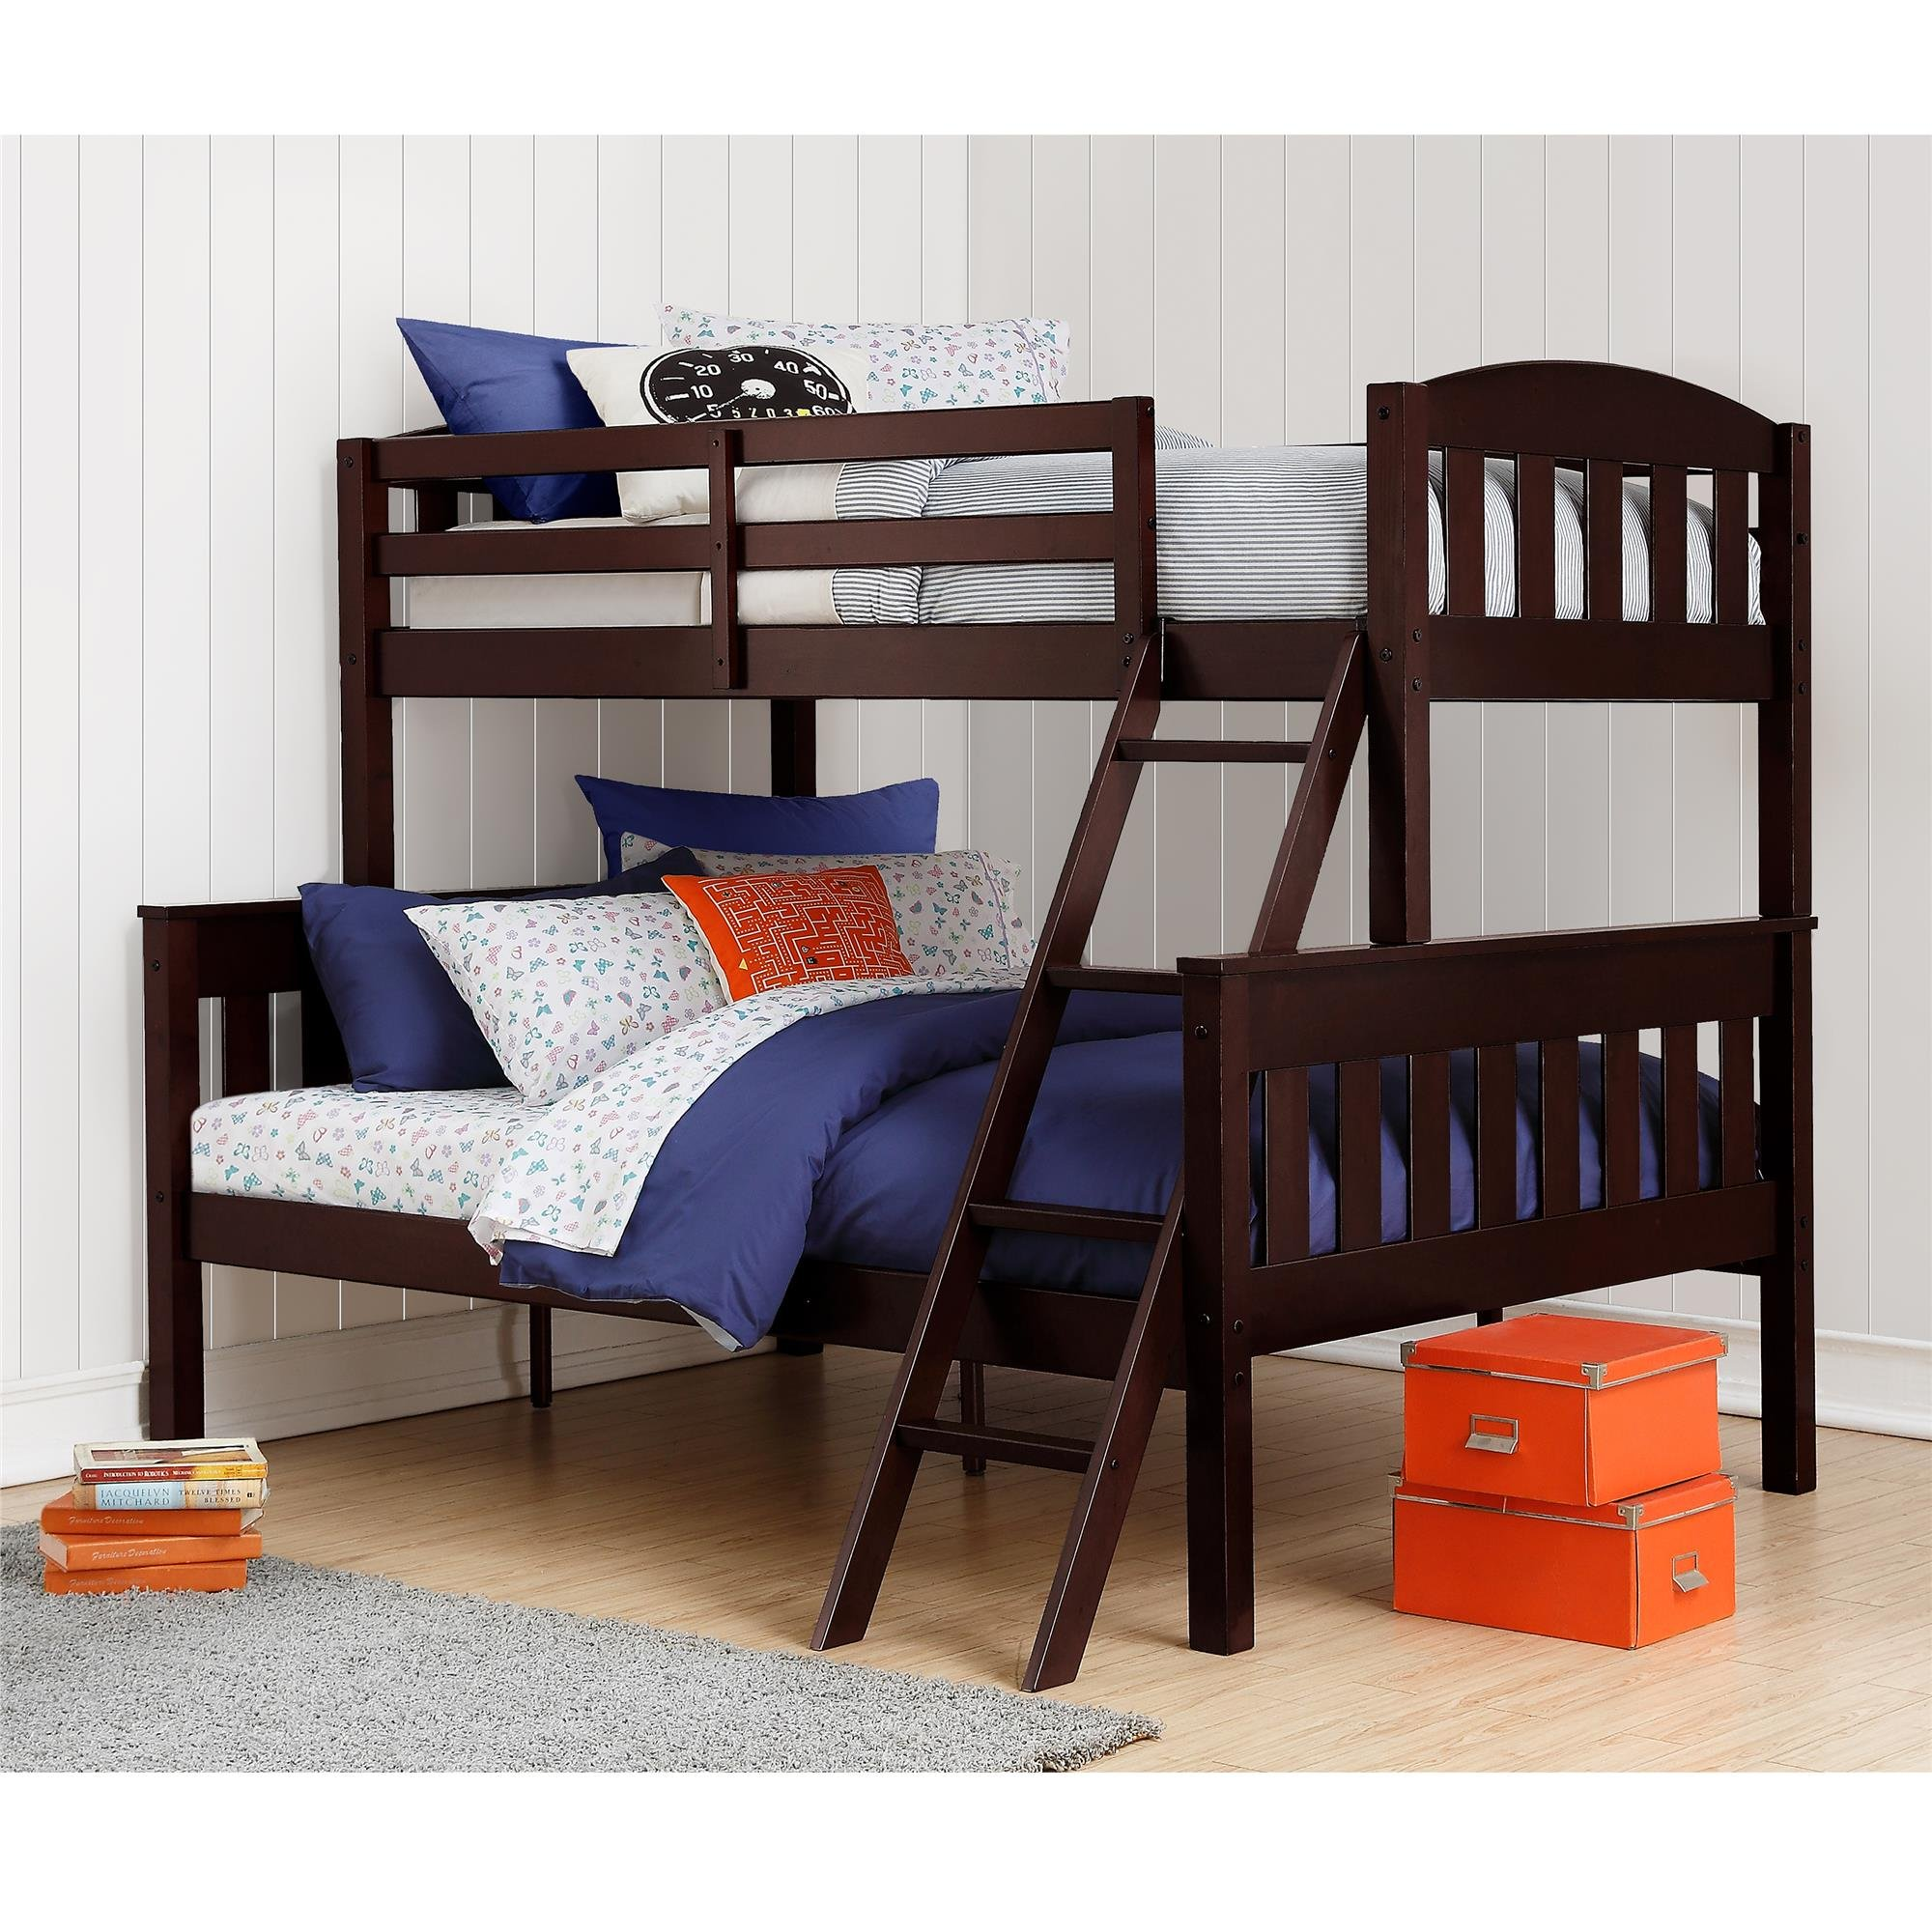 Dorel Living Airlie Solid Wood Bunk Beds Twin Over Full with Ladder and Guard Rail, Espresso by Dorel Living